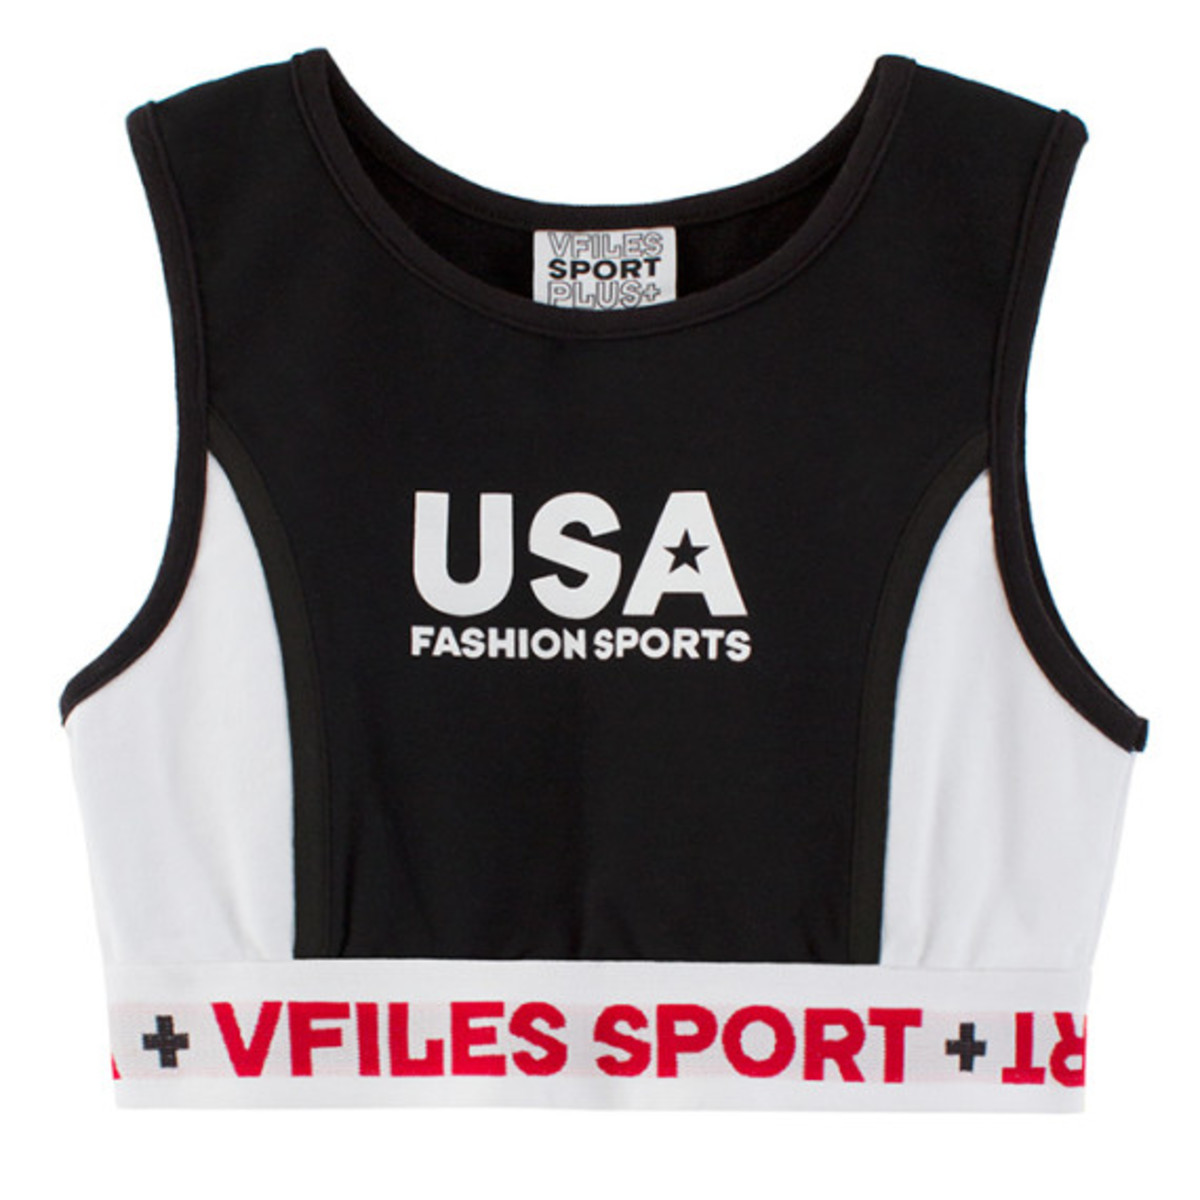 vfiles-sport-plus-debut-collection-18